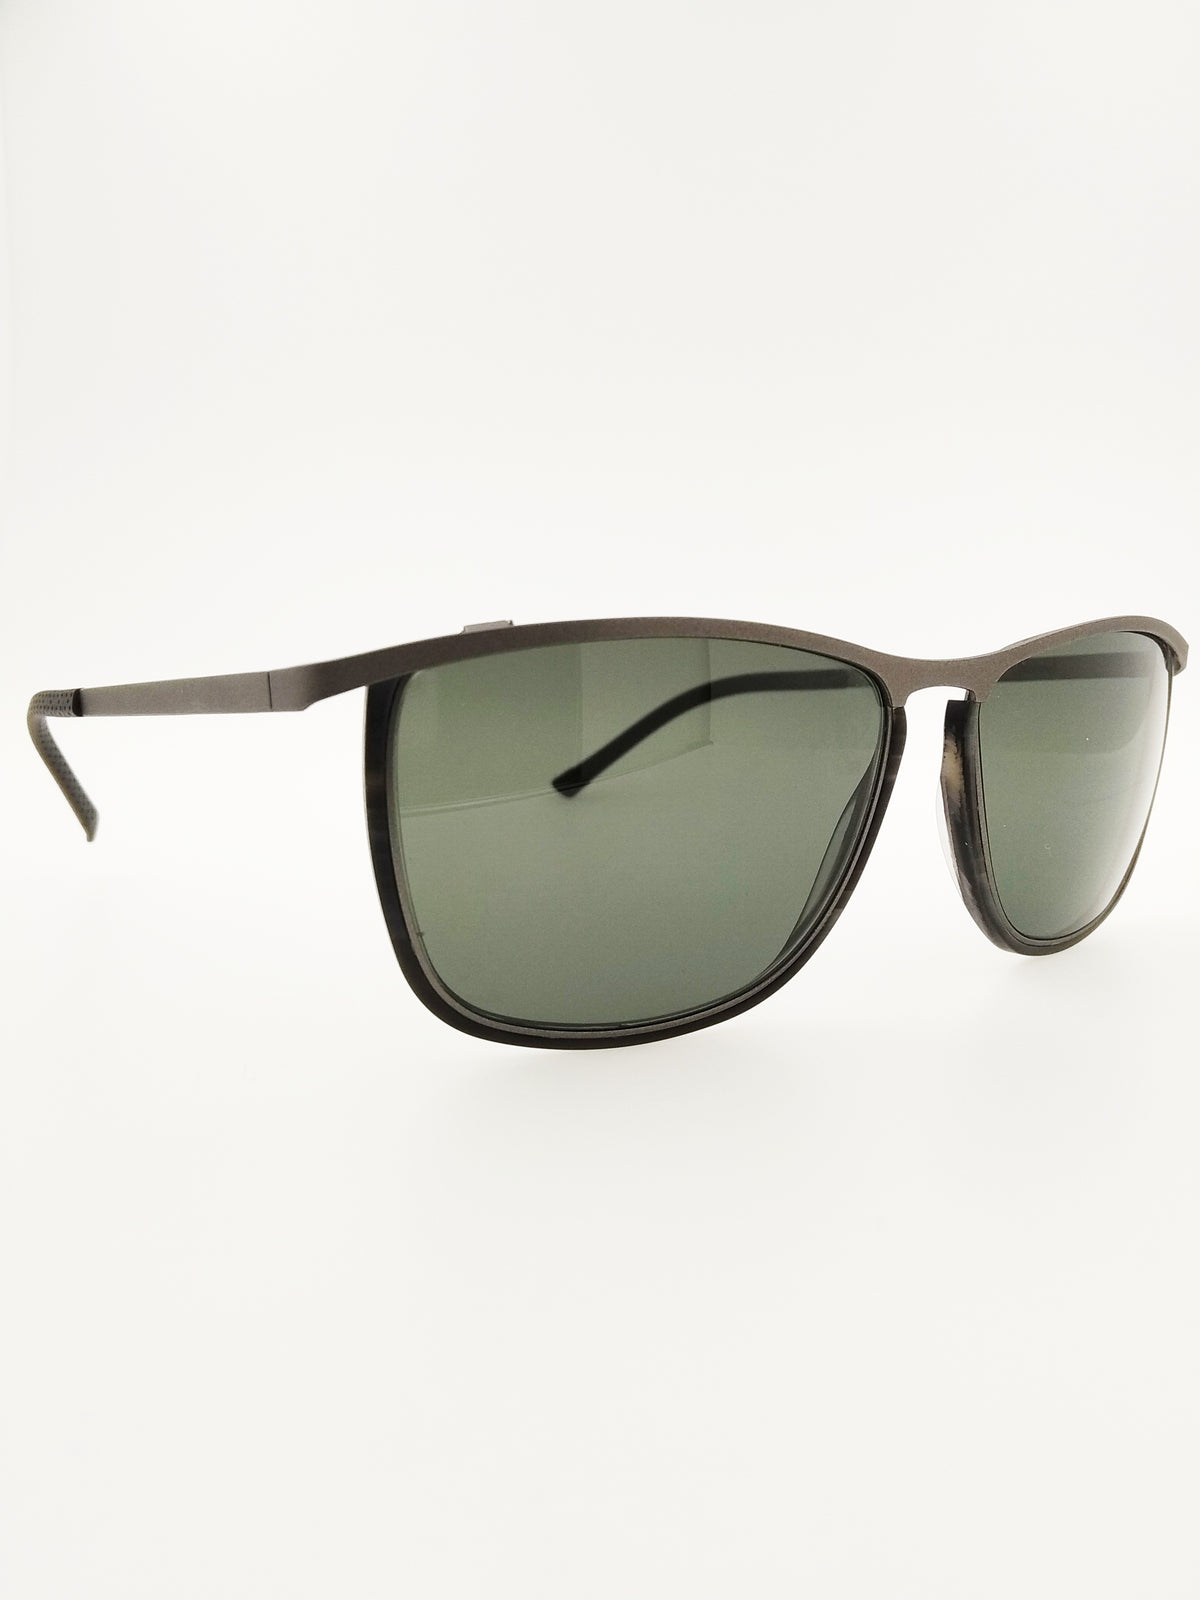 10654 M3S POLARIZED